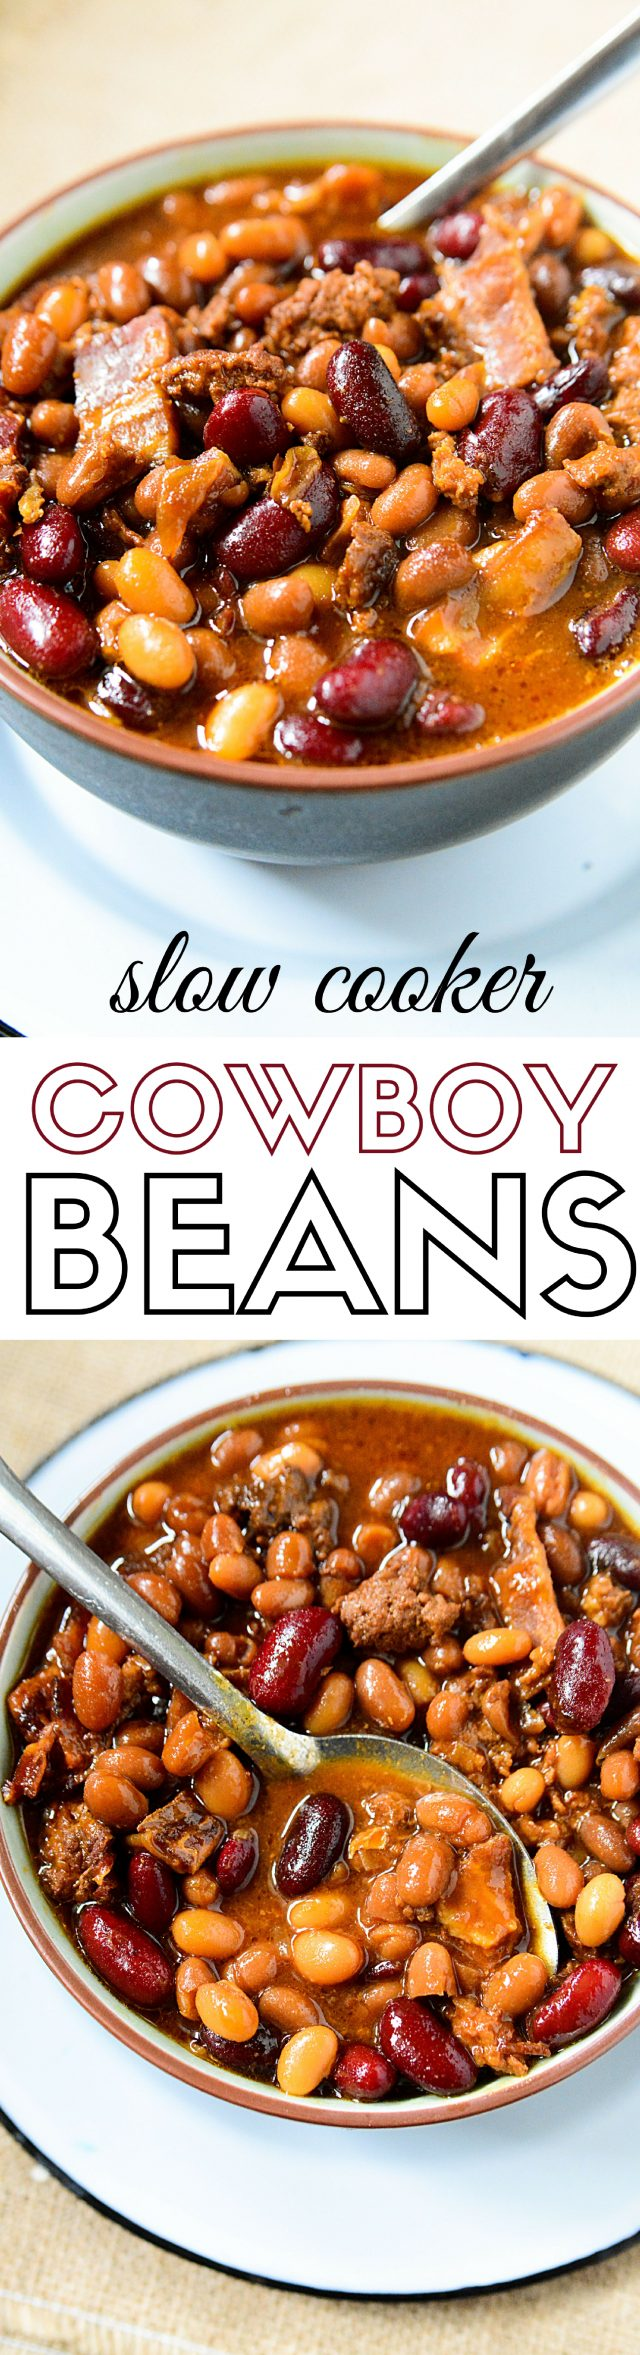 Ground beef, bacon, onions and three varieties of beans, this Crockpot baked beans recipe is the perfect option for a warm, hearty lunch or dinner this fall season.